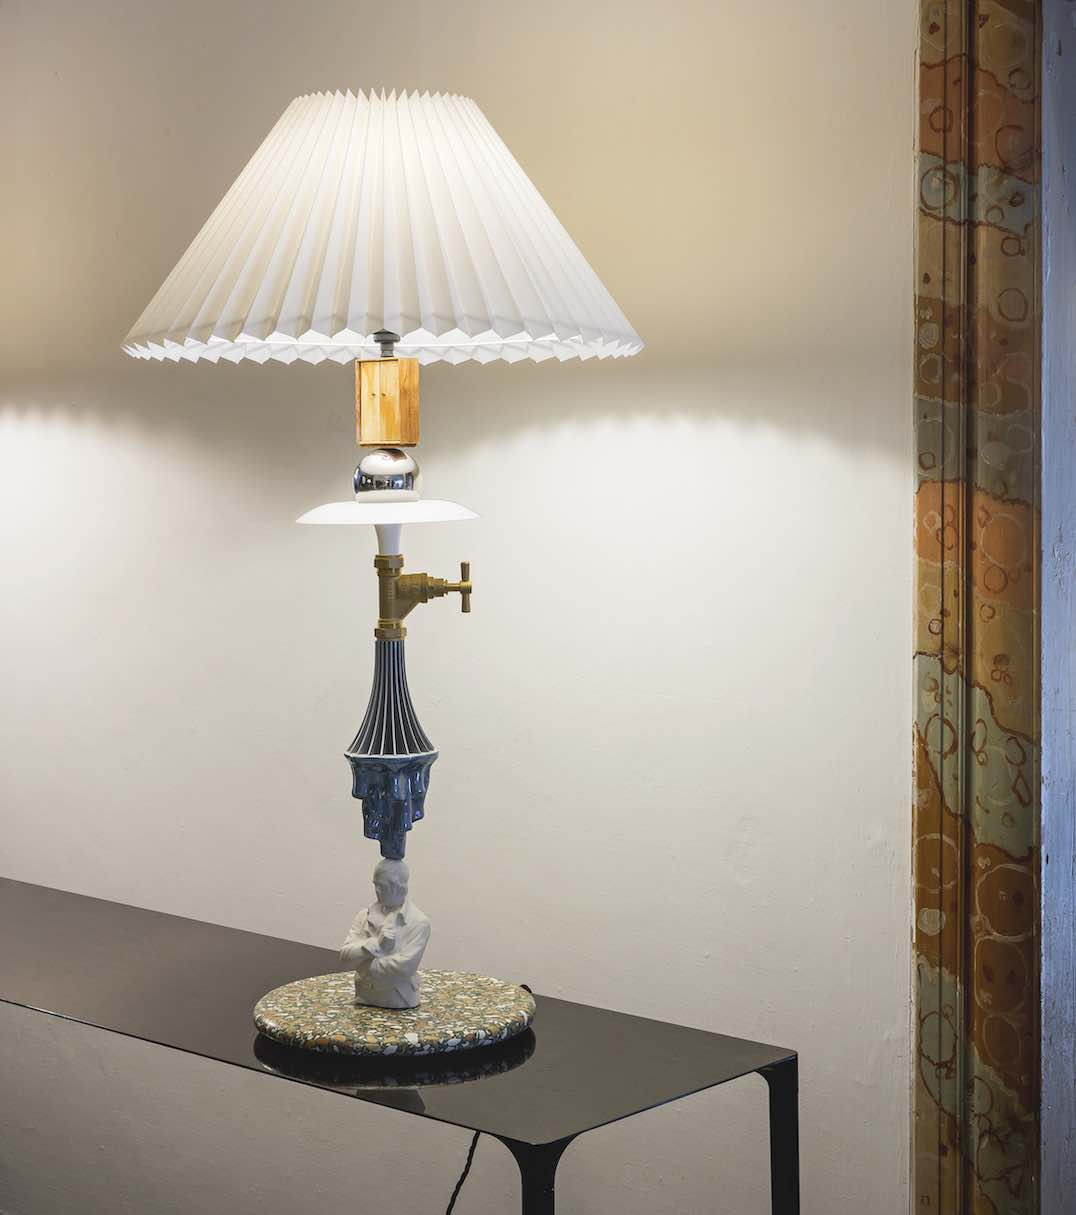 Kebab Lamp by Committee - Established & Sons @ @ NOMAD Saint Moritz 2020 - Photo courtesy of NOMAD